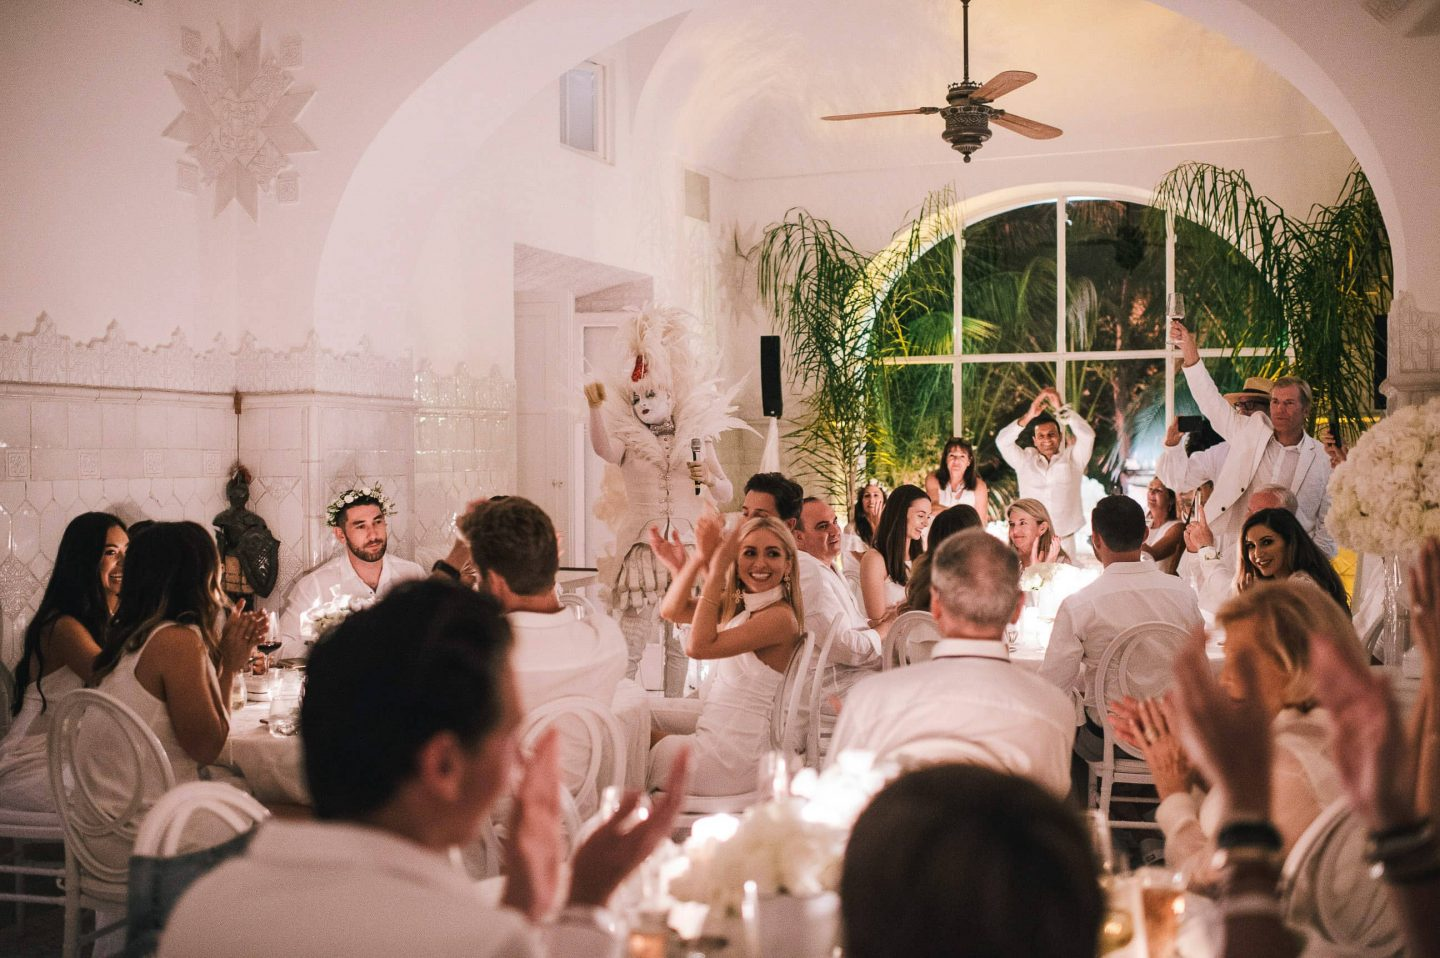 Guests at the Midsummer Night's Eve-themed white welcome party at this Positano wedding weekend in Villa Tre Ville | Photo by Gianni di Natale